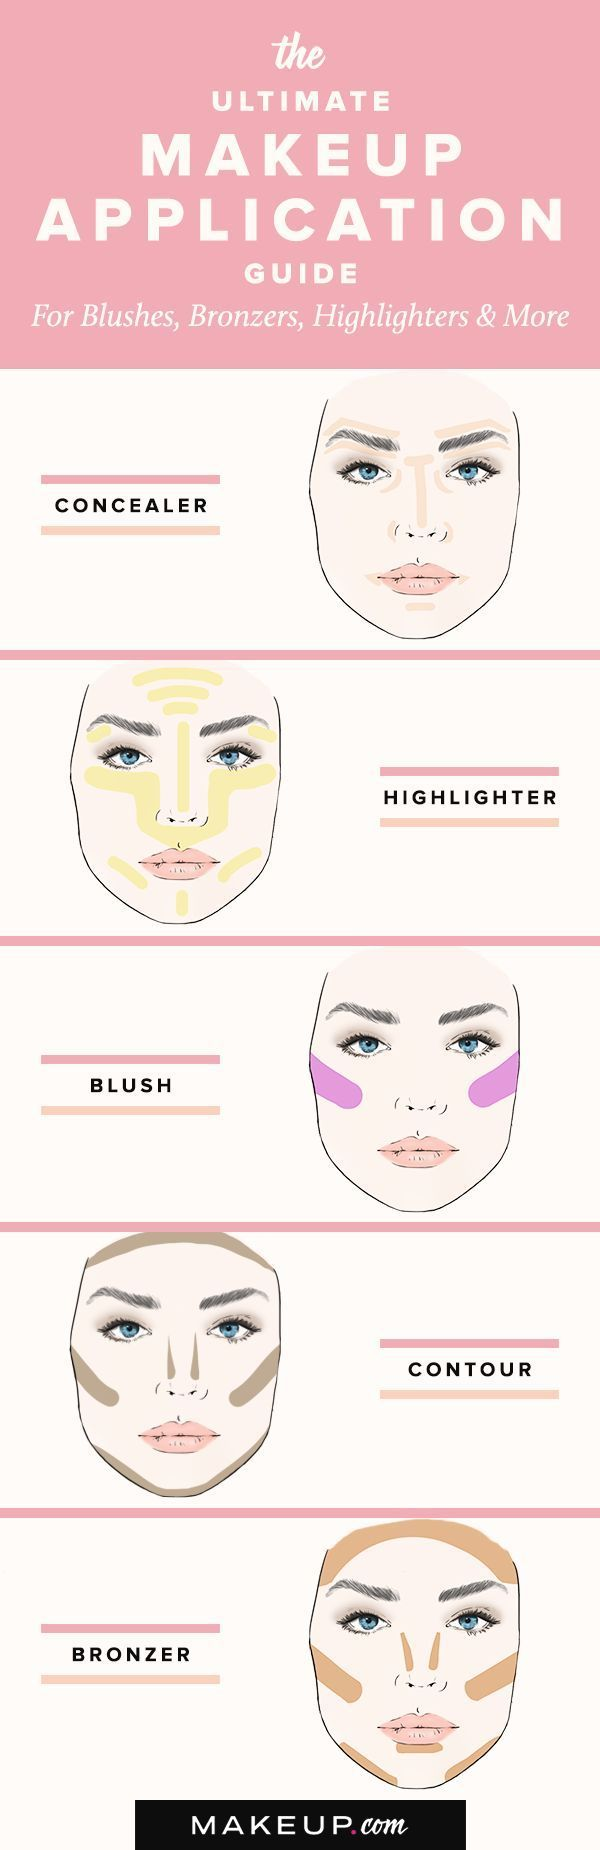 the ultimate makeup application guide for blushes, bronzers